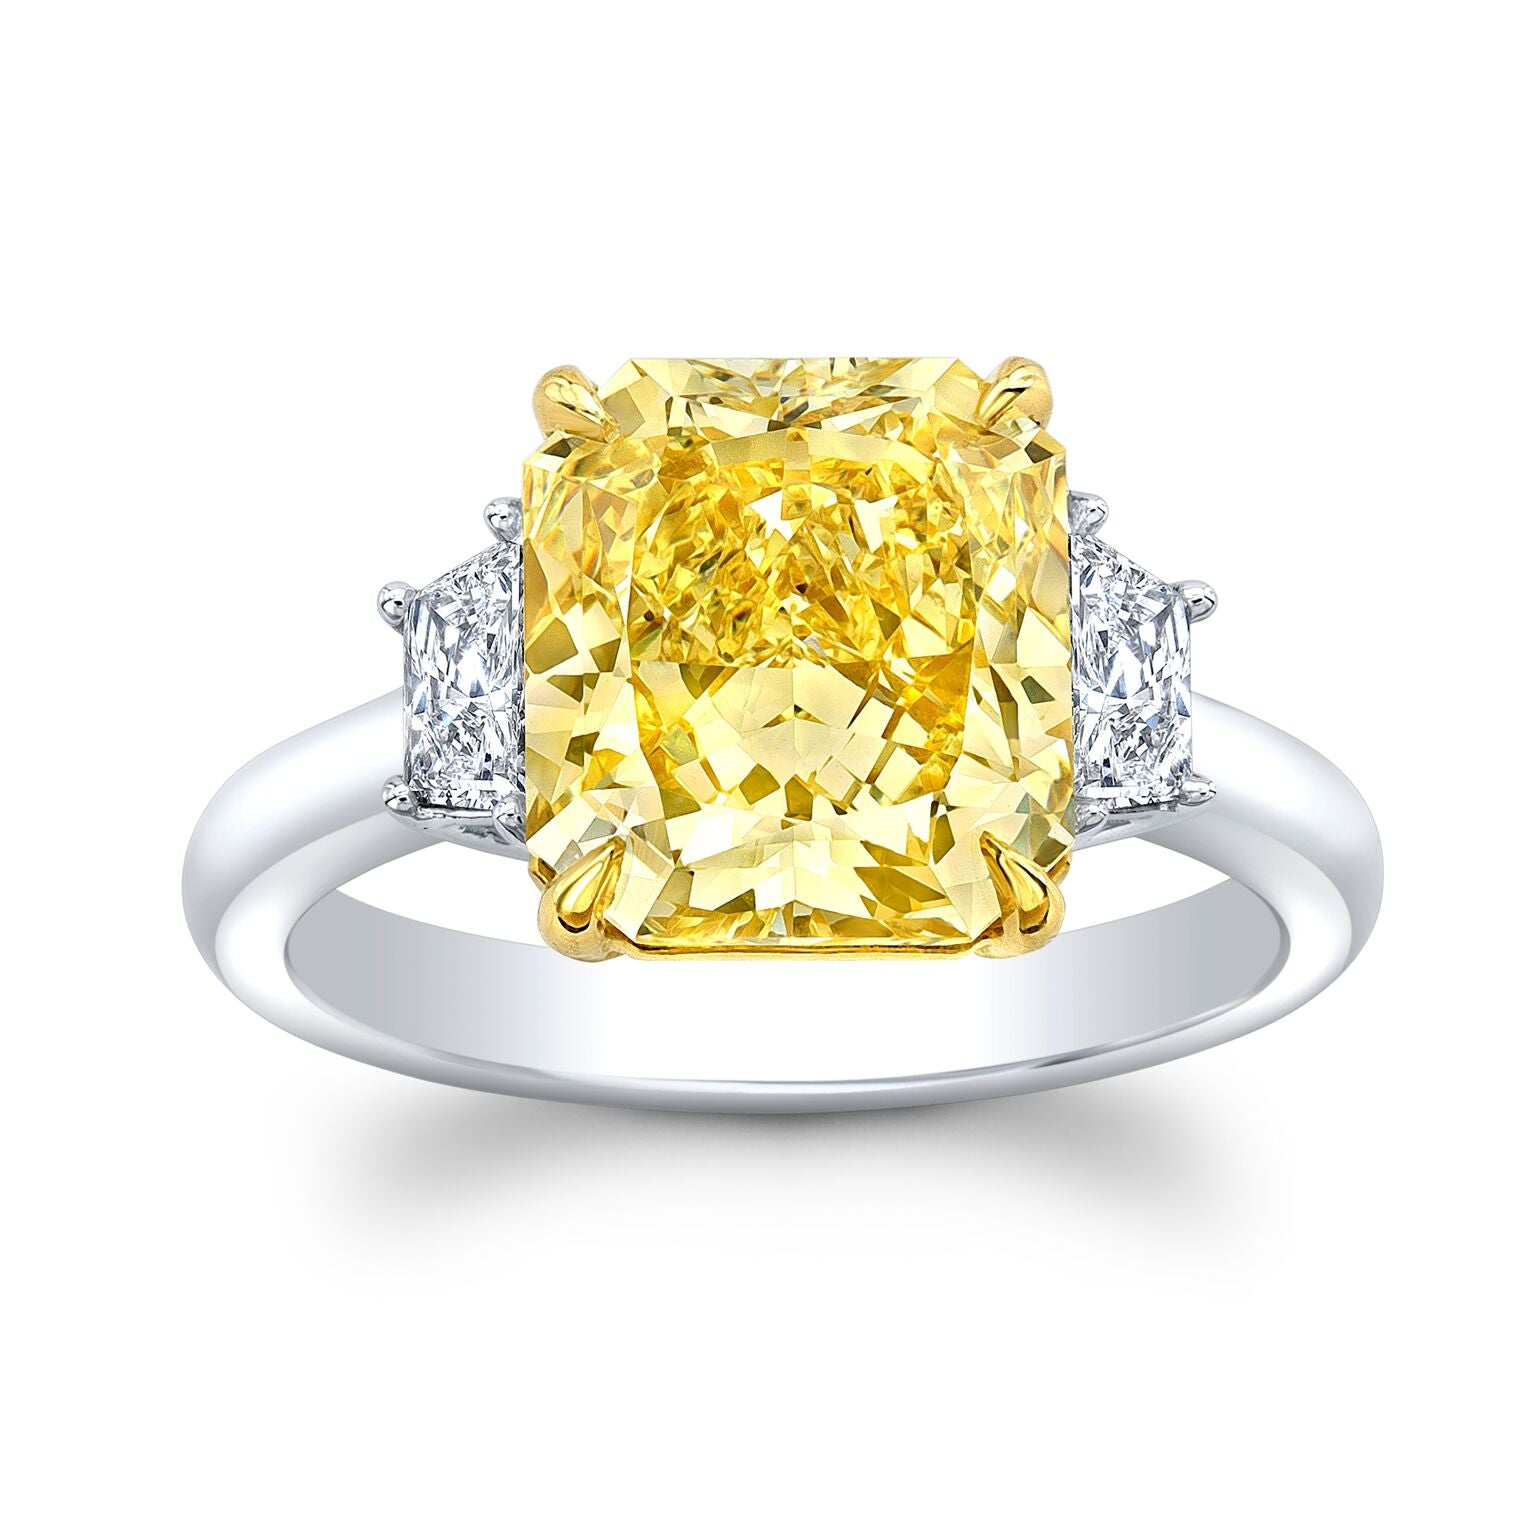 4.16 Ct. Intense Yellow Radiant Cut Diamond Ring